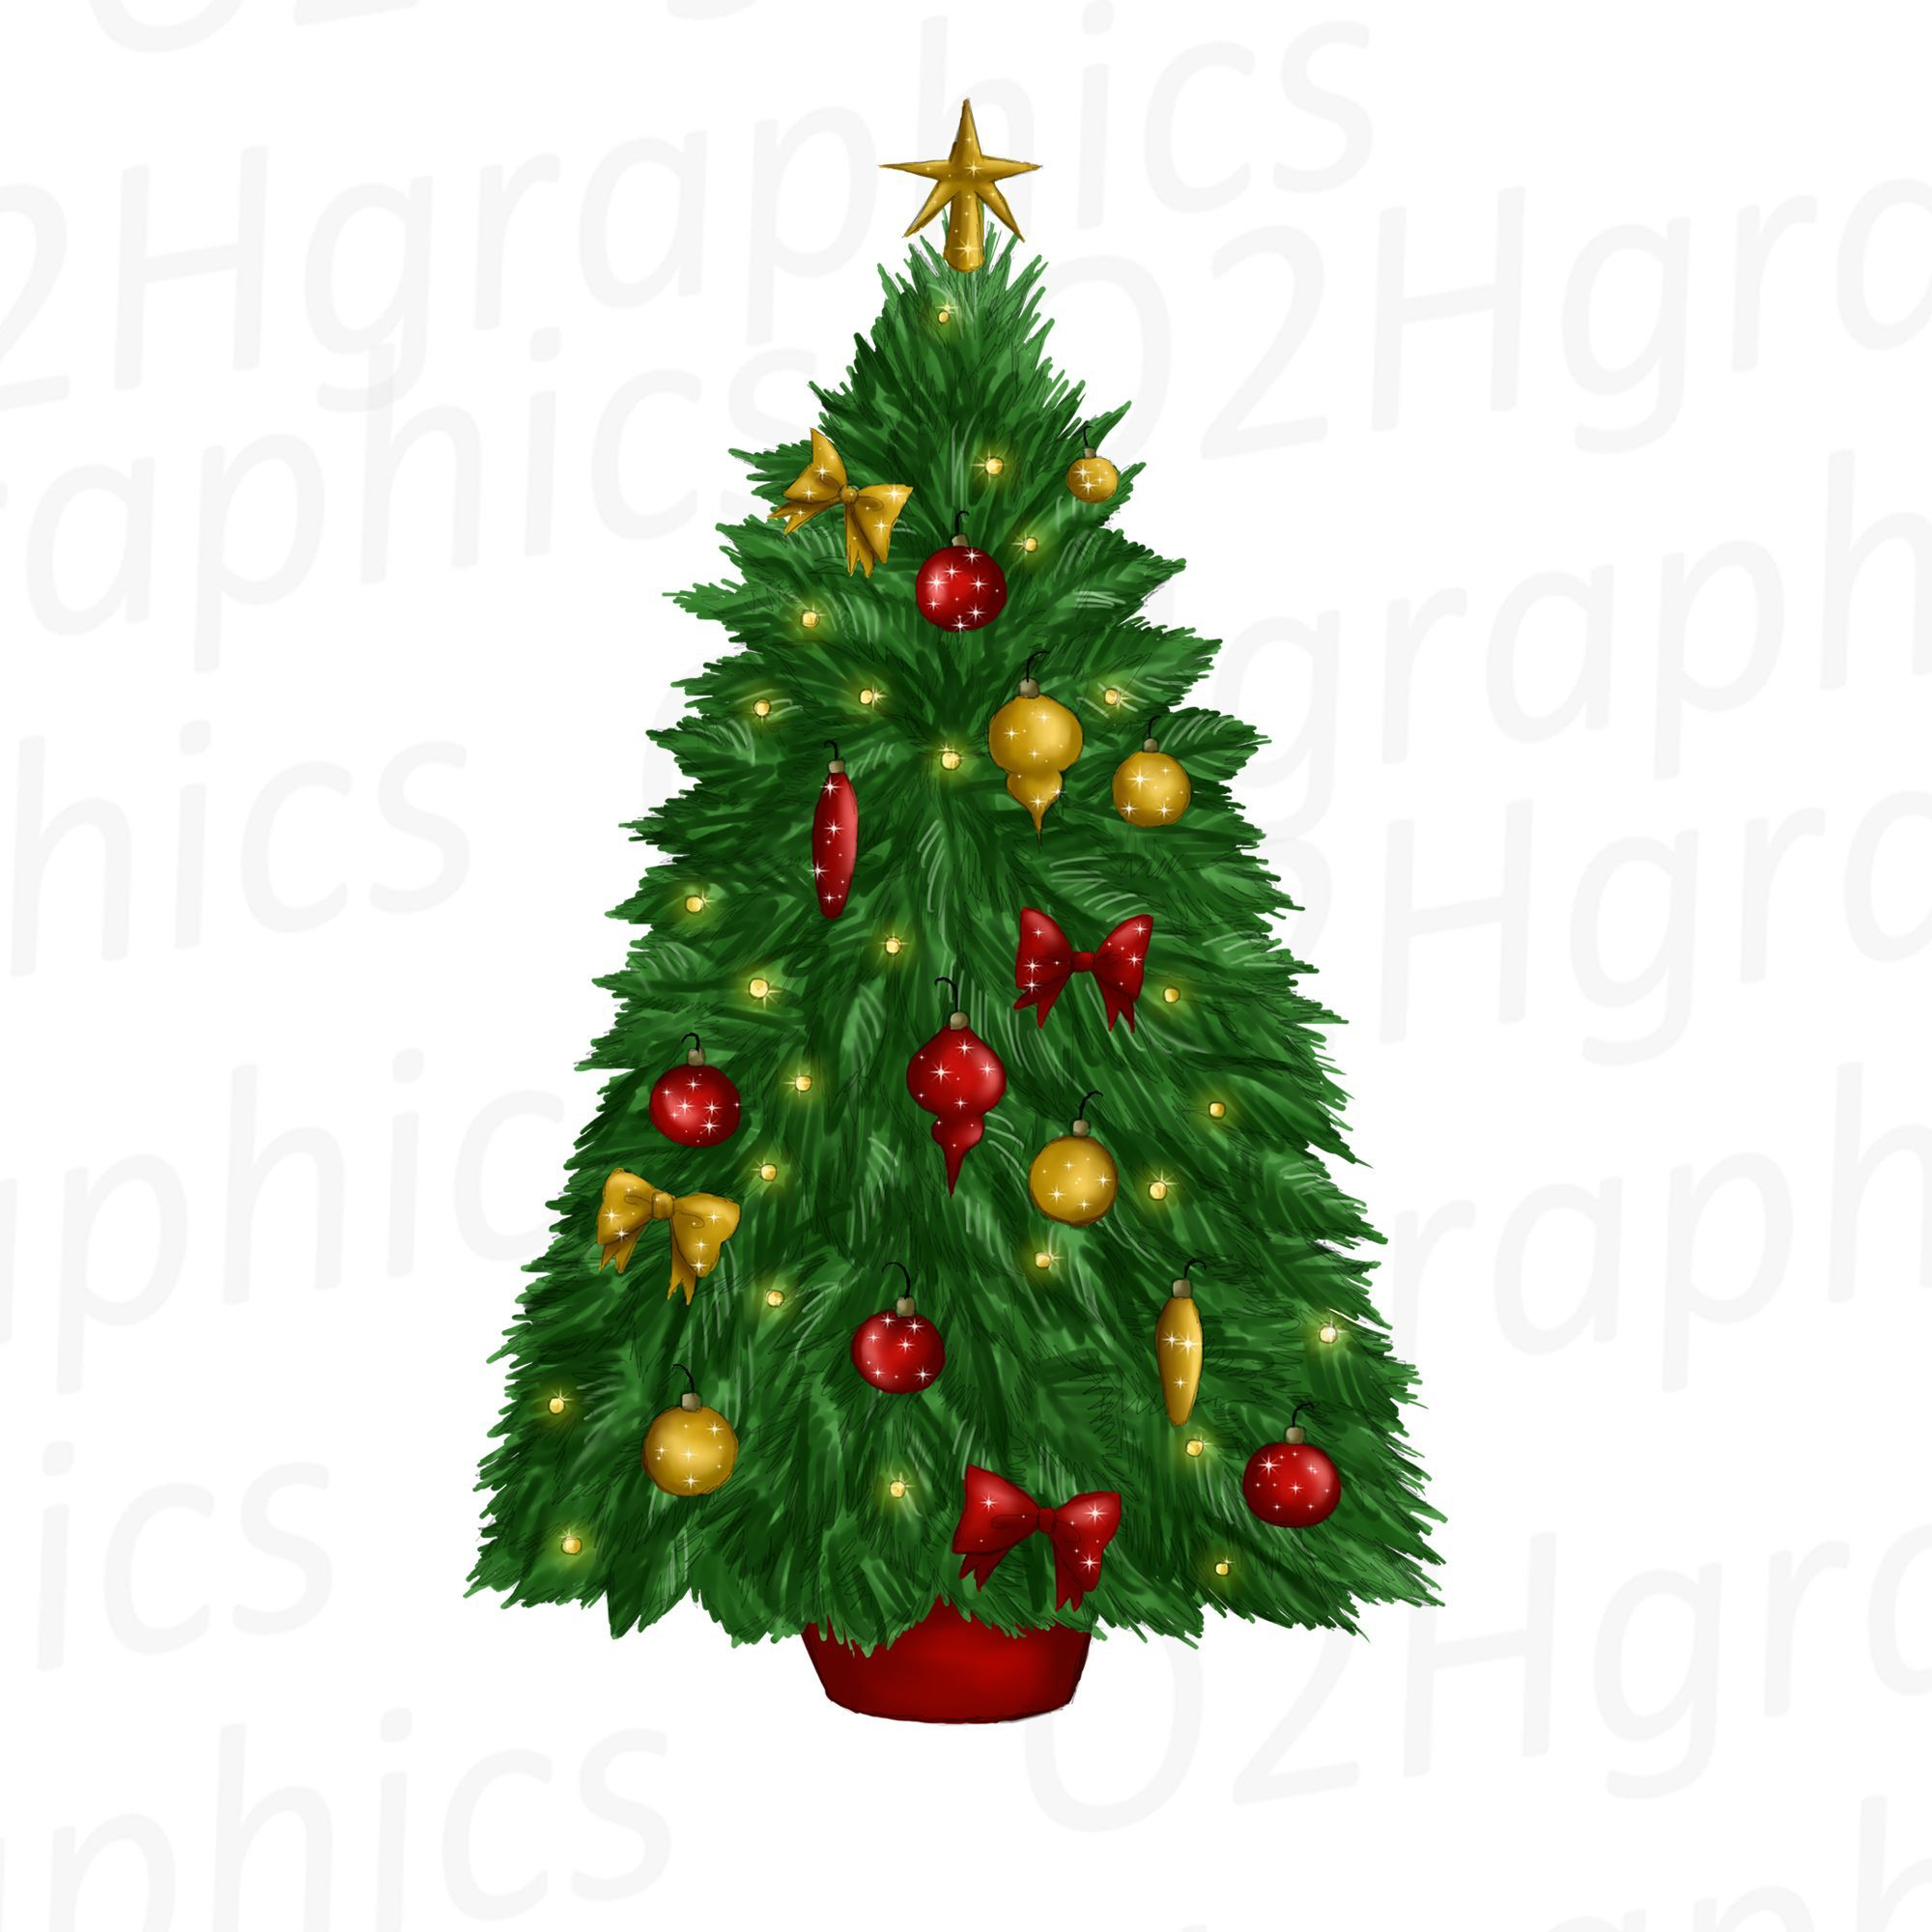 Decorated Christmas Tree Clipart Sublimation Graphics Design By O2hgraphics Https Christmas Tree Decorations Christmas Tree Clipart Christmas Tree Drawing